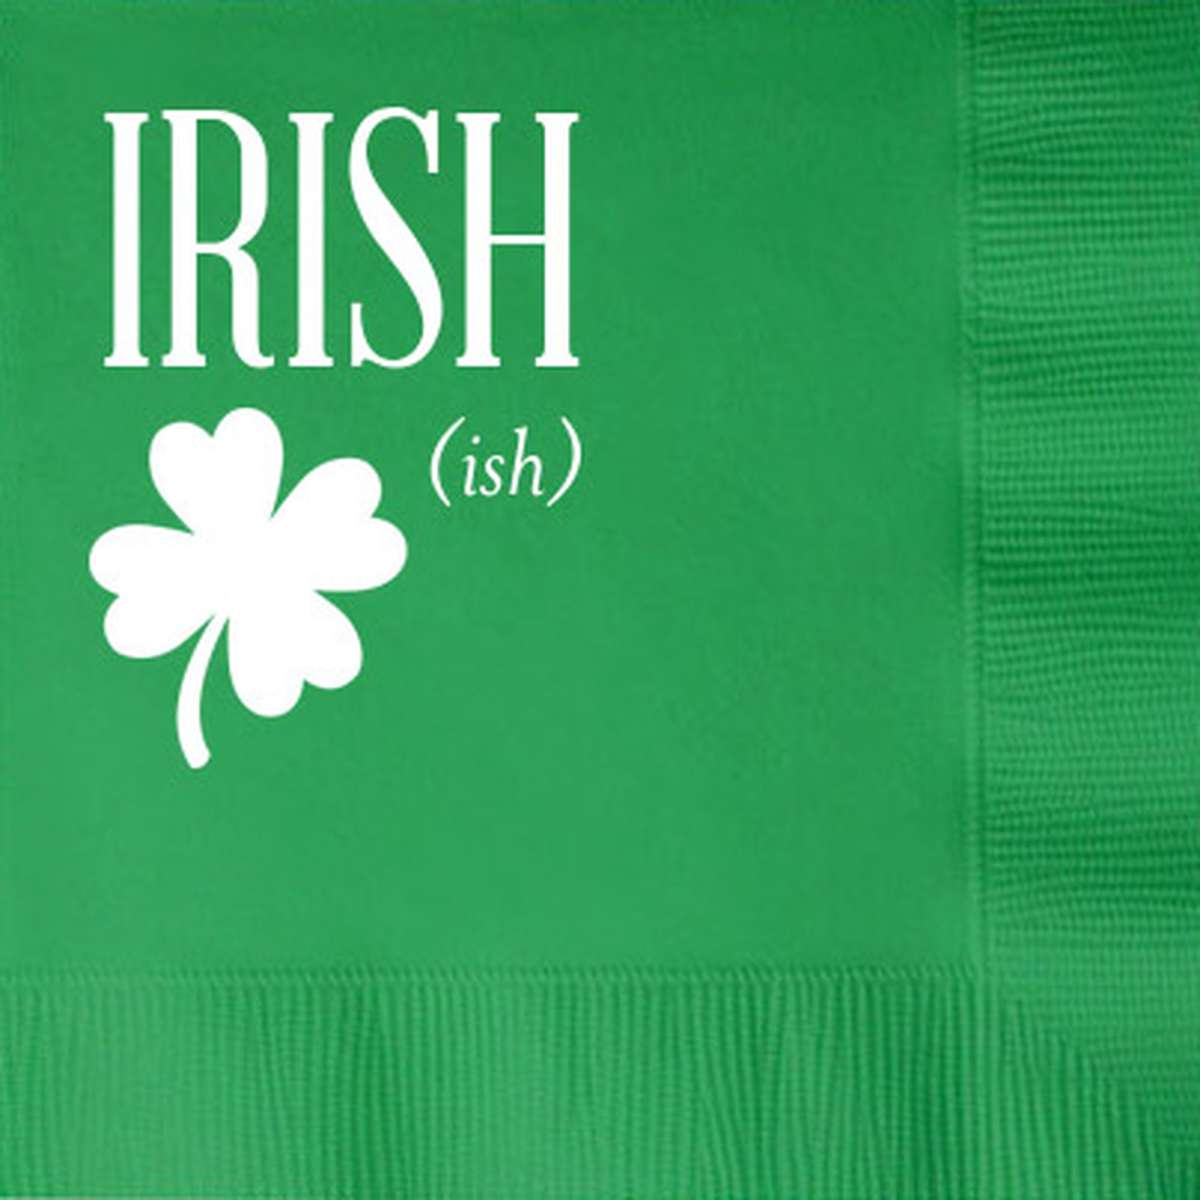 St. Patrick's Day Personalized Cocktail Napkin